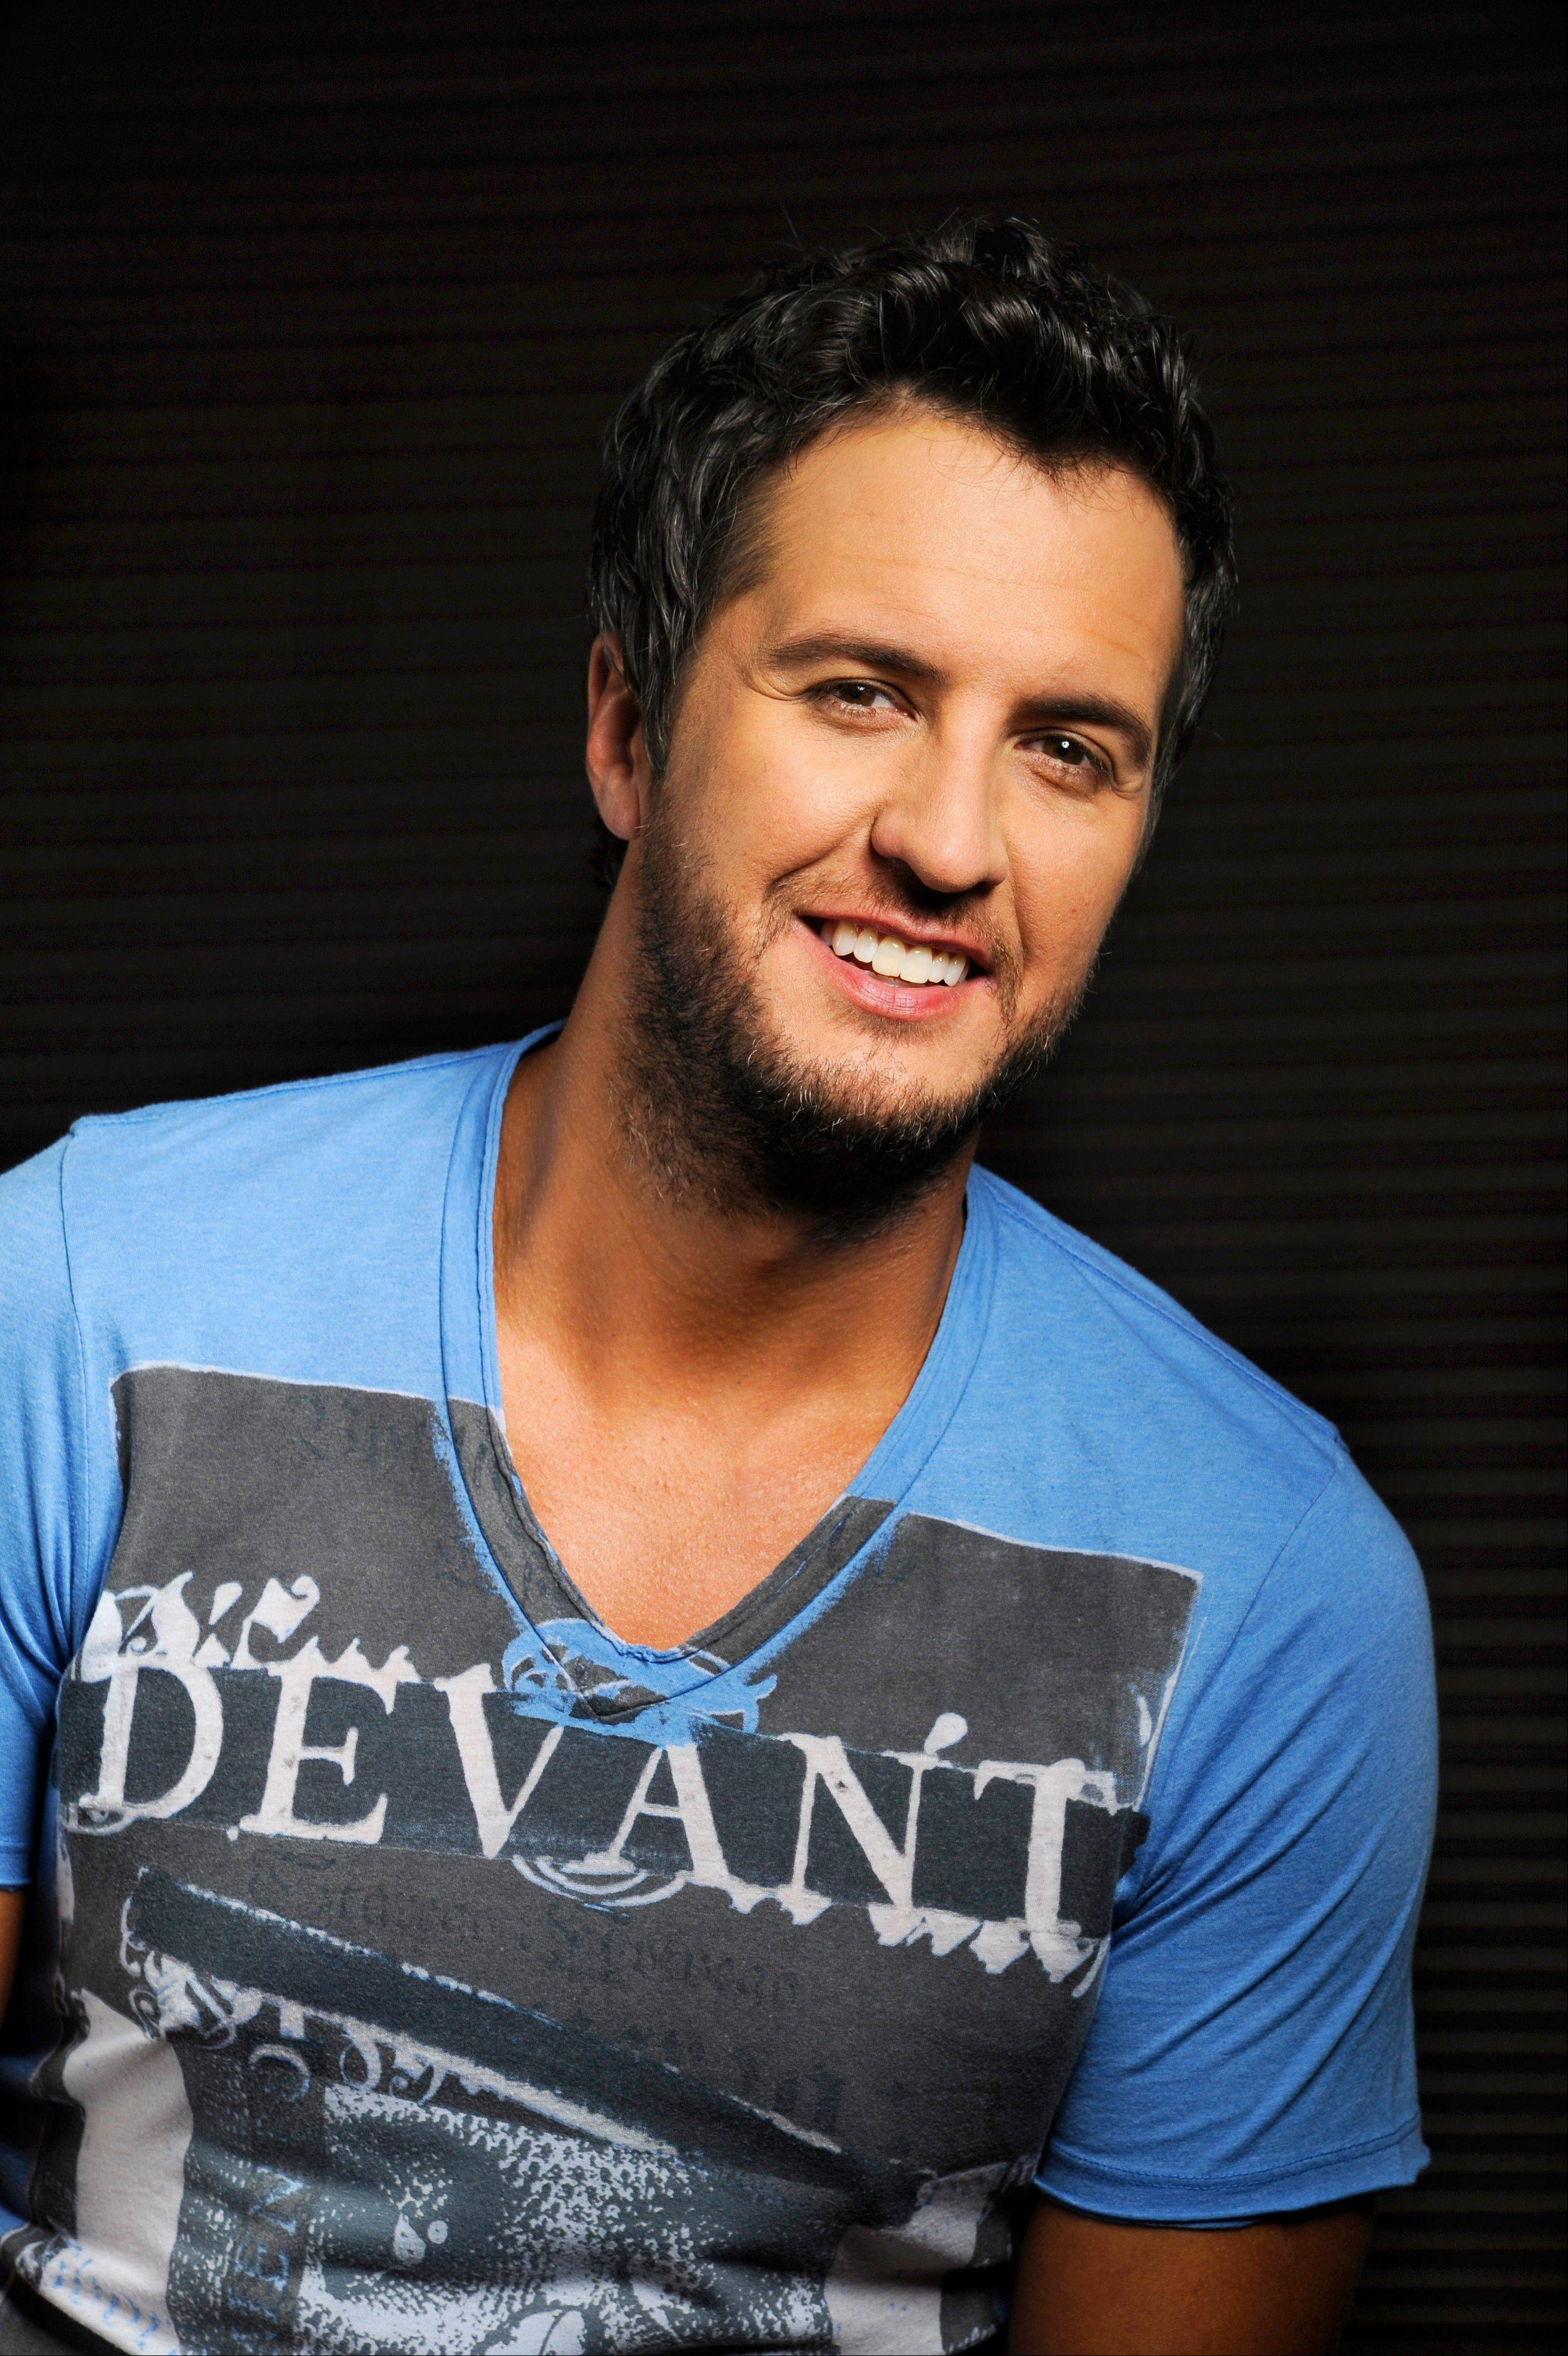 Luke Bryan has taken an unusual approach to the business side of his career since winning the Academy of Country Music's entertainer of the year in April: He's turning down almost everything.